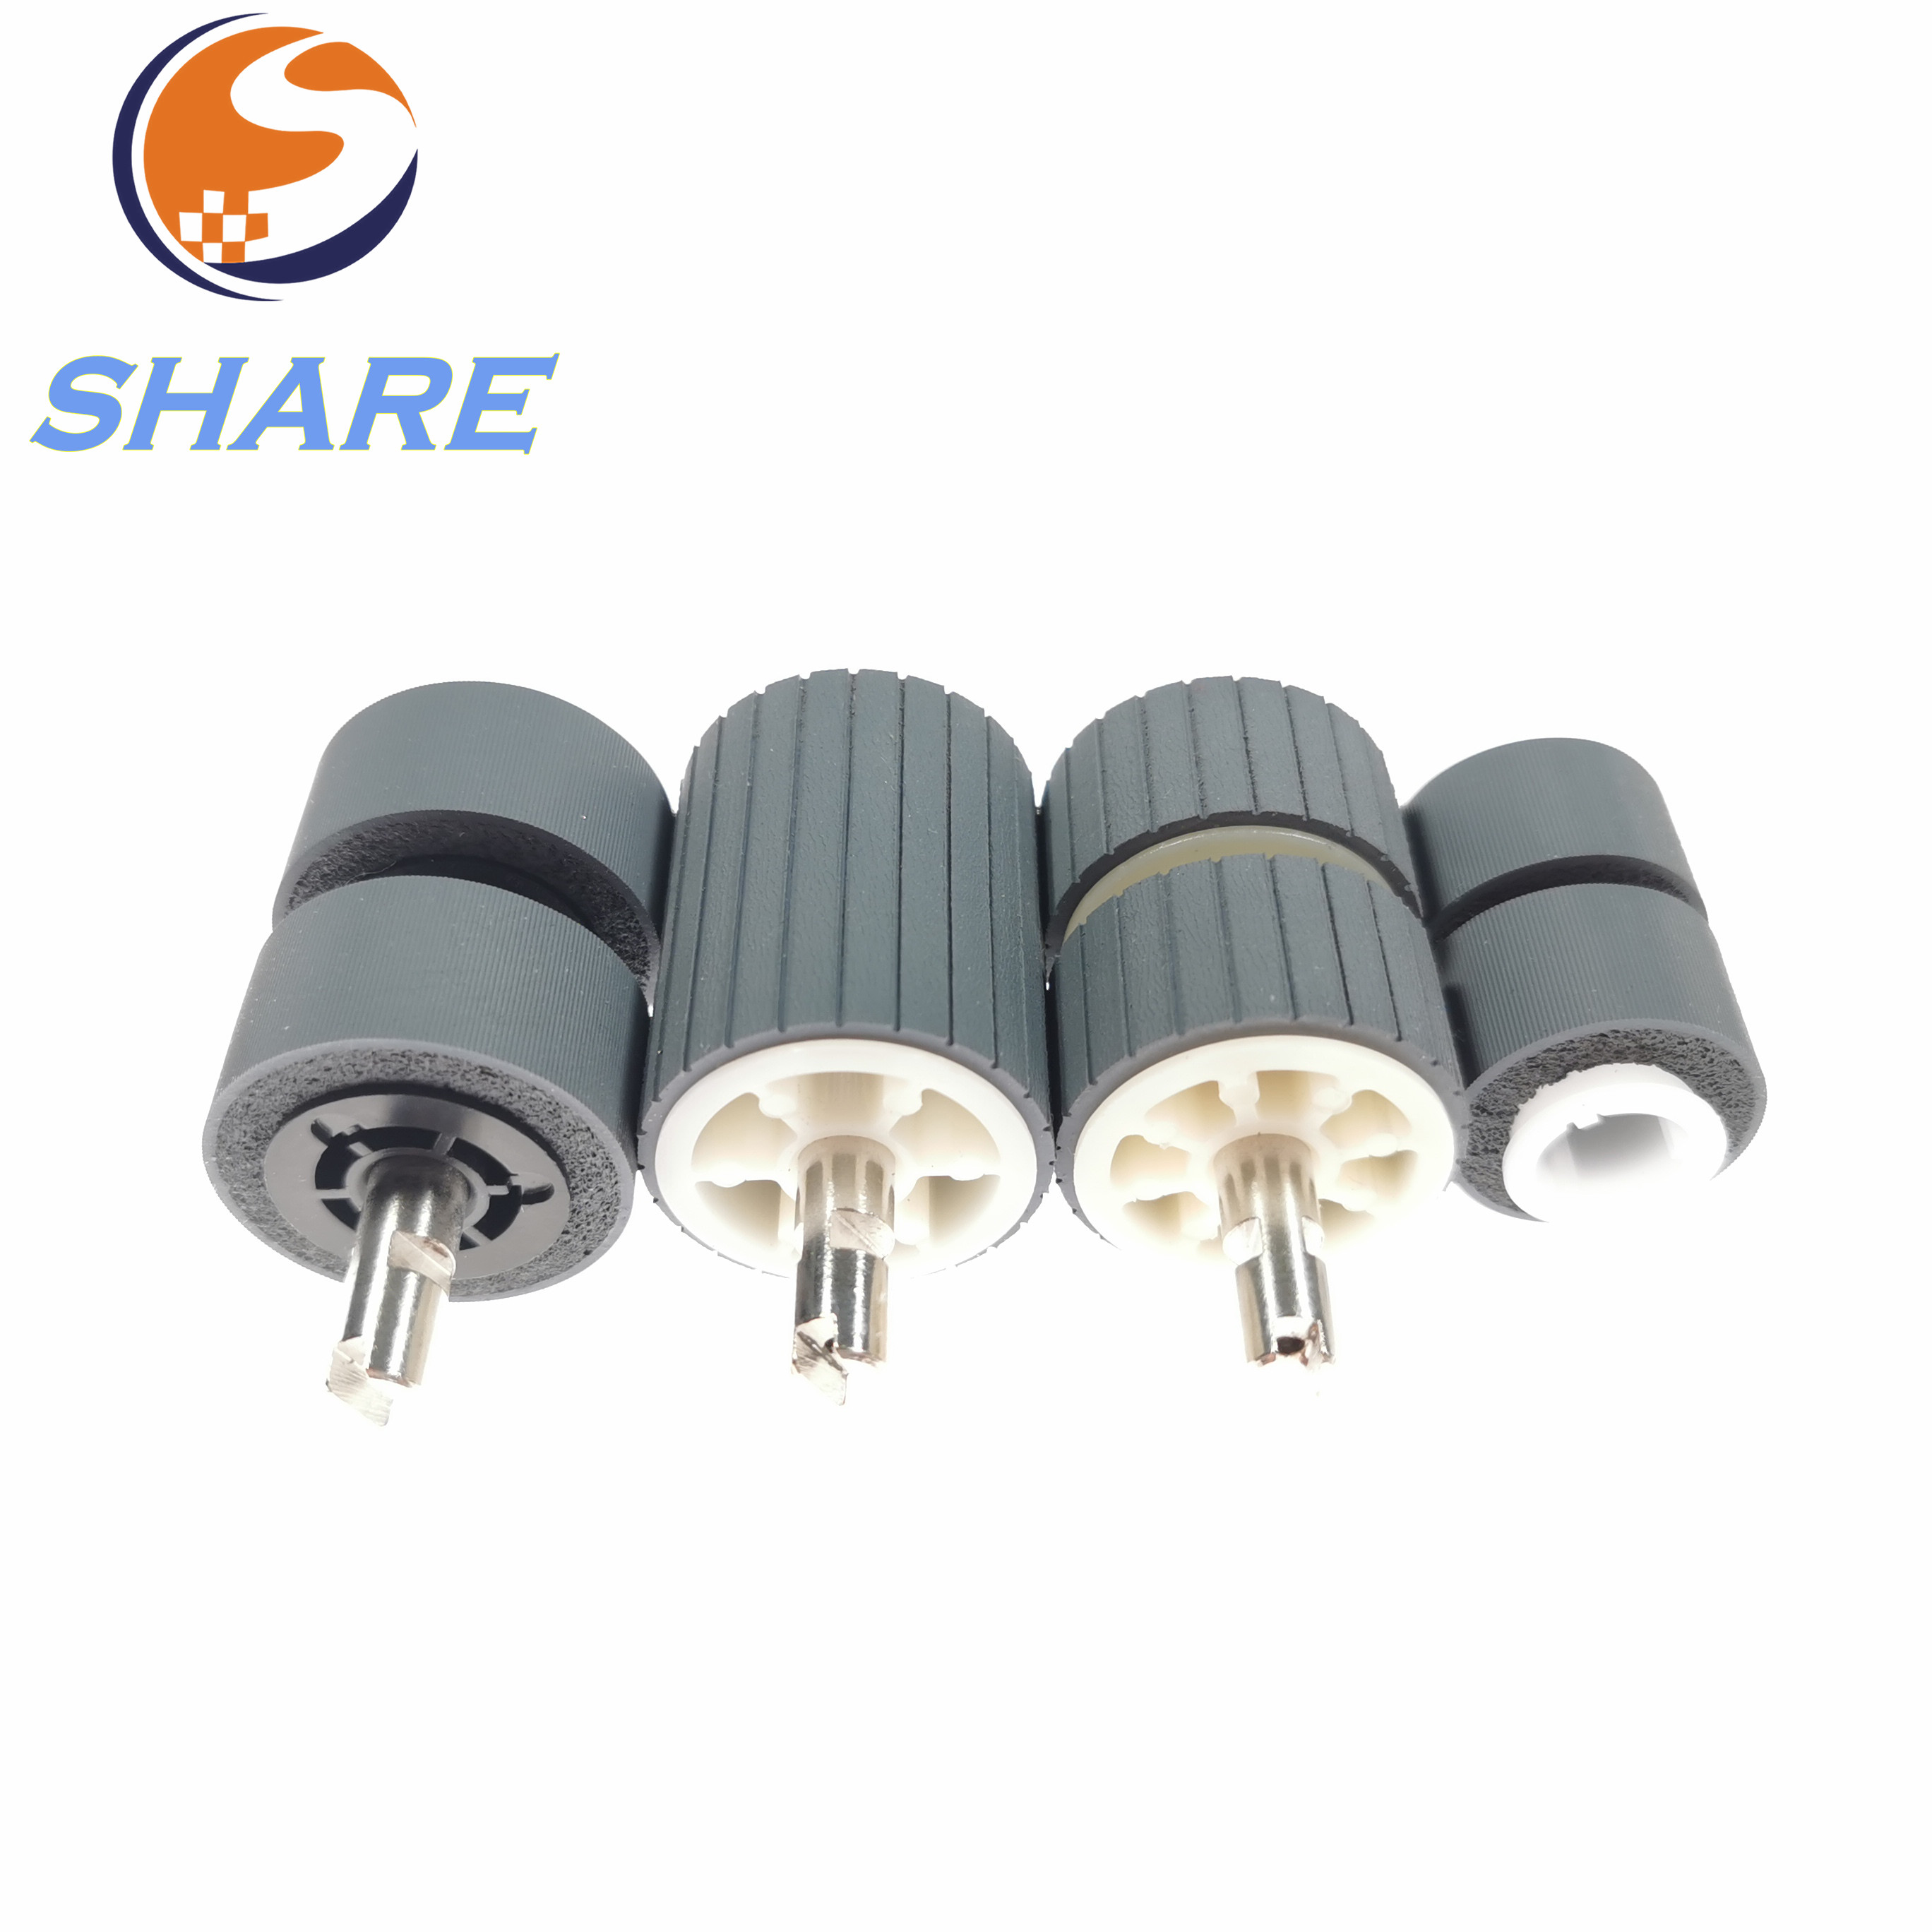 Share new L2707-60001 L2707A ADF Feed Roller Replacement roller kit for HP Scanjet 5000 7000 Series ScanJet 5000 7000S3 5000S4Share new L2707-60001 L2707A ADF Feed Roller Replacement roller kit for HP Scanjet 5000 7000 Series ScanJet 5000 7000S3 5000S4